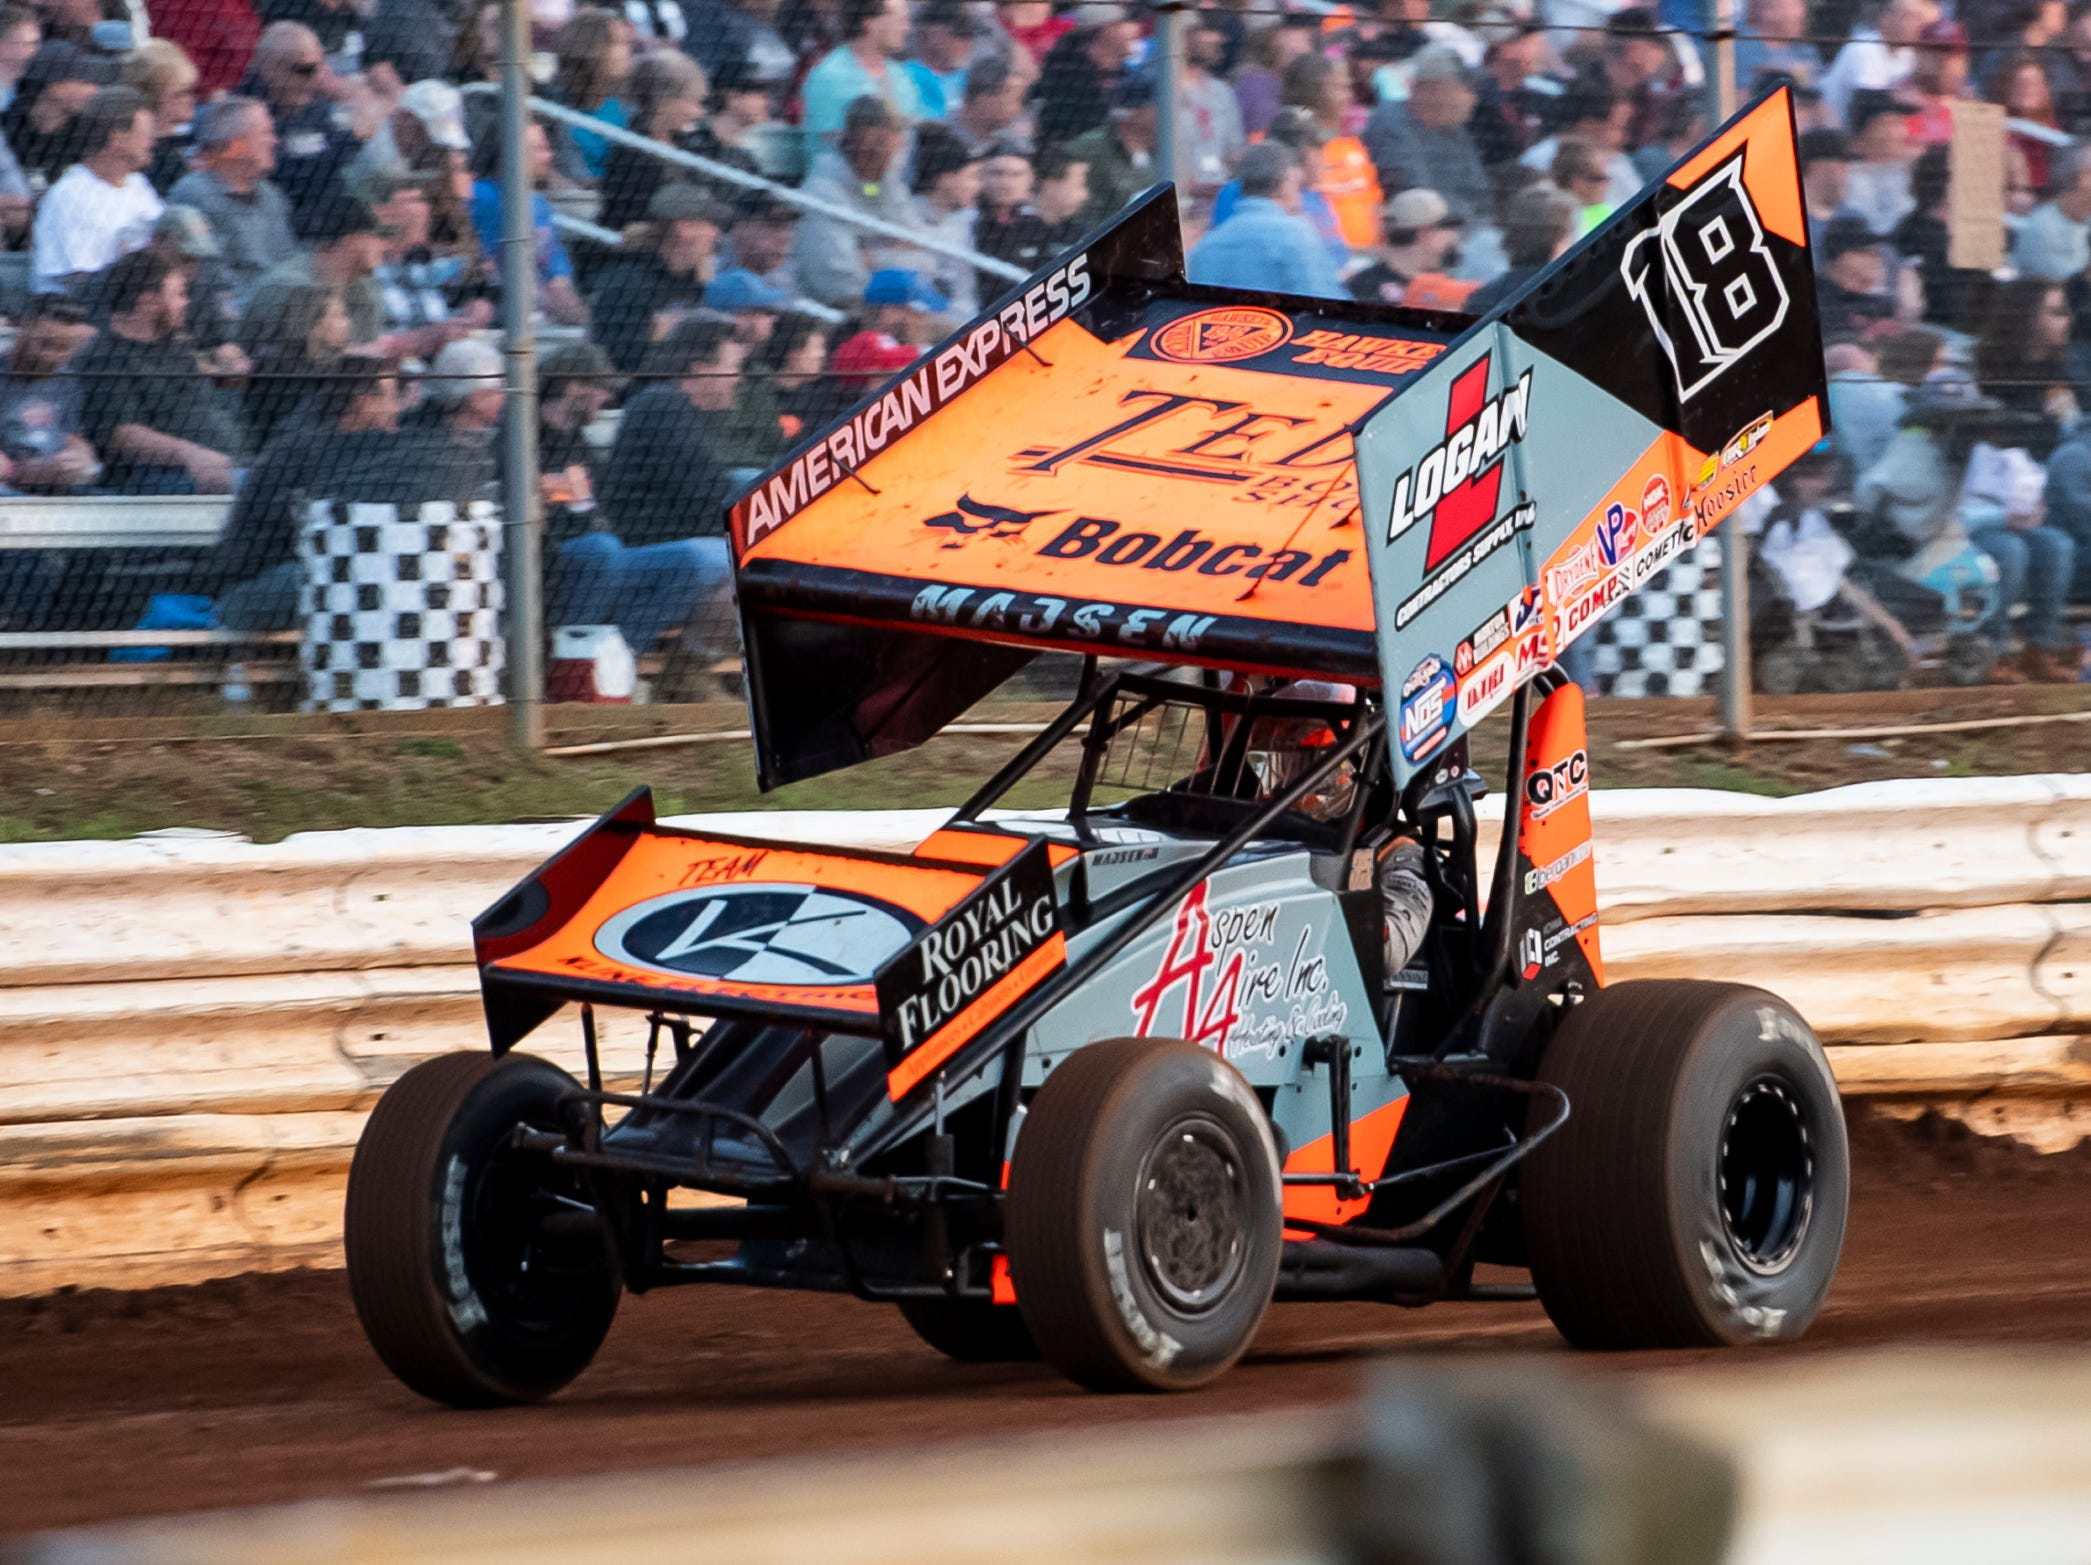 Ian Madsen races in the number 18 car during the World of Outlaws Gettysburg Clash at Lincoln Speedway in Abbottstown on Wednesday, May 15, 2019.